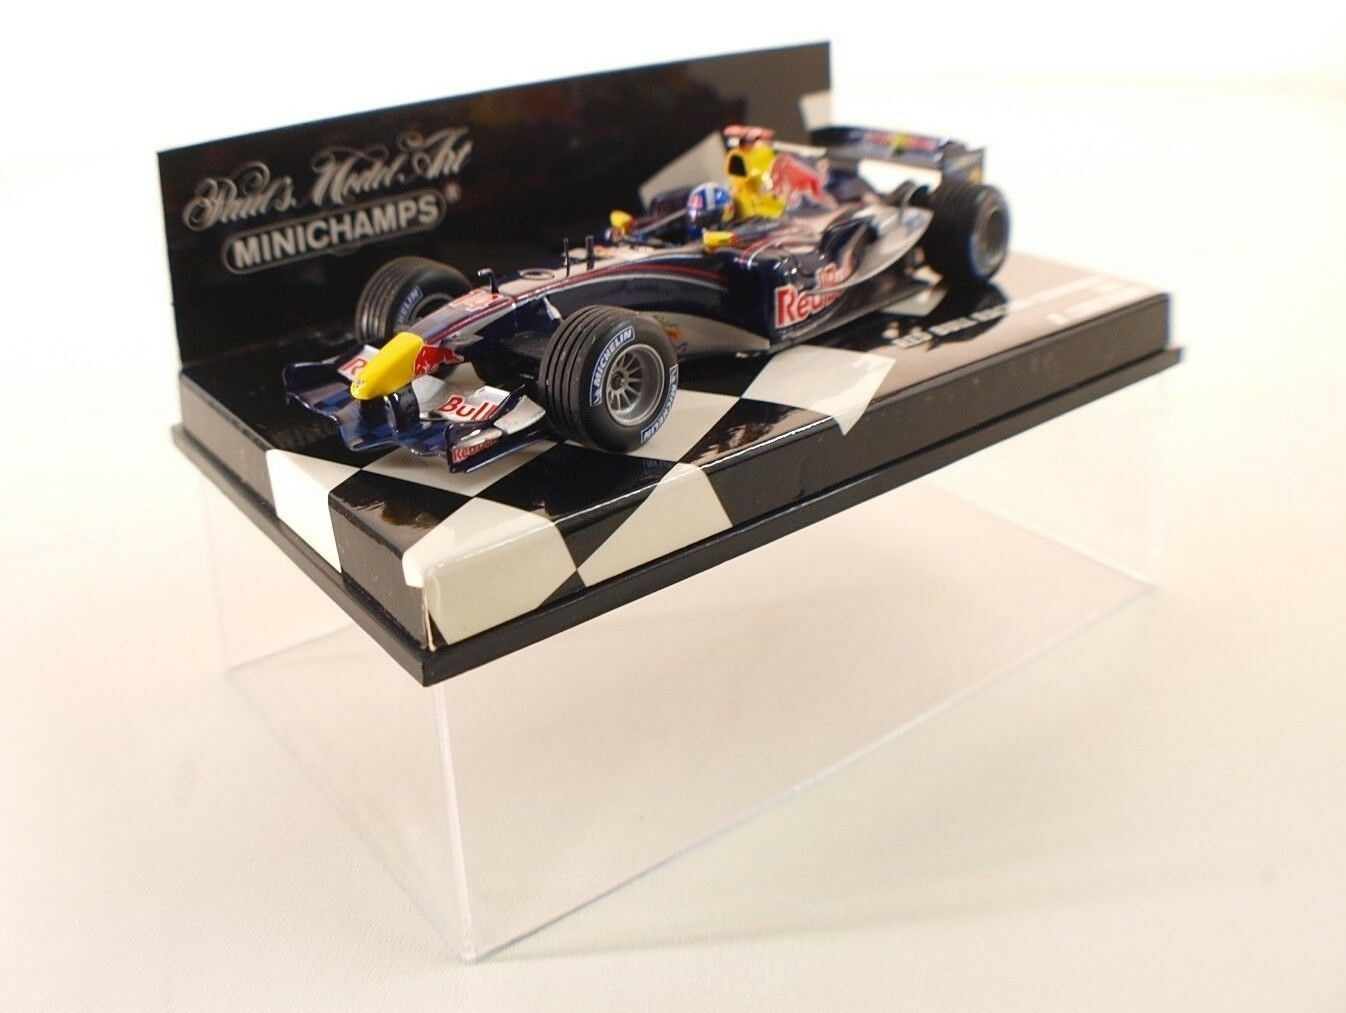 Minichamps F1 rosso Bull Racing Cosworth RB1 Coulthard 1 43 neuf boxed boite MIB